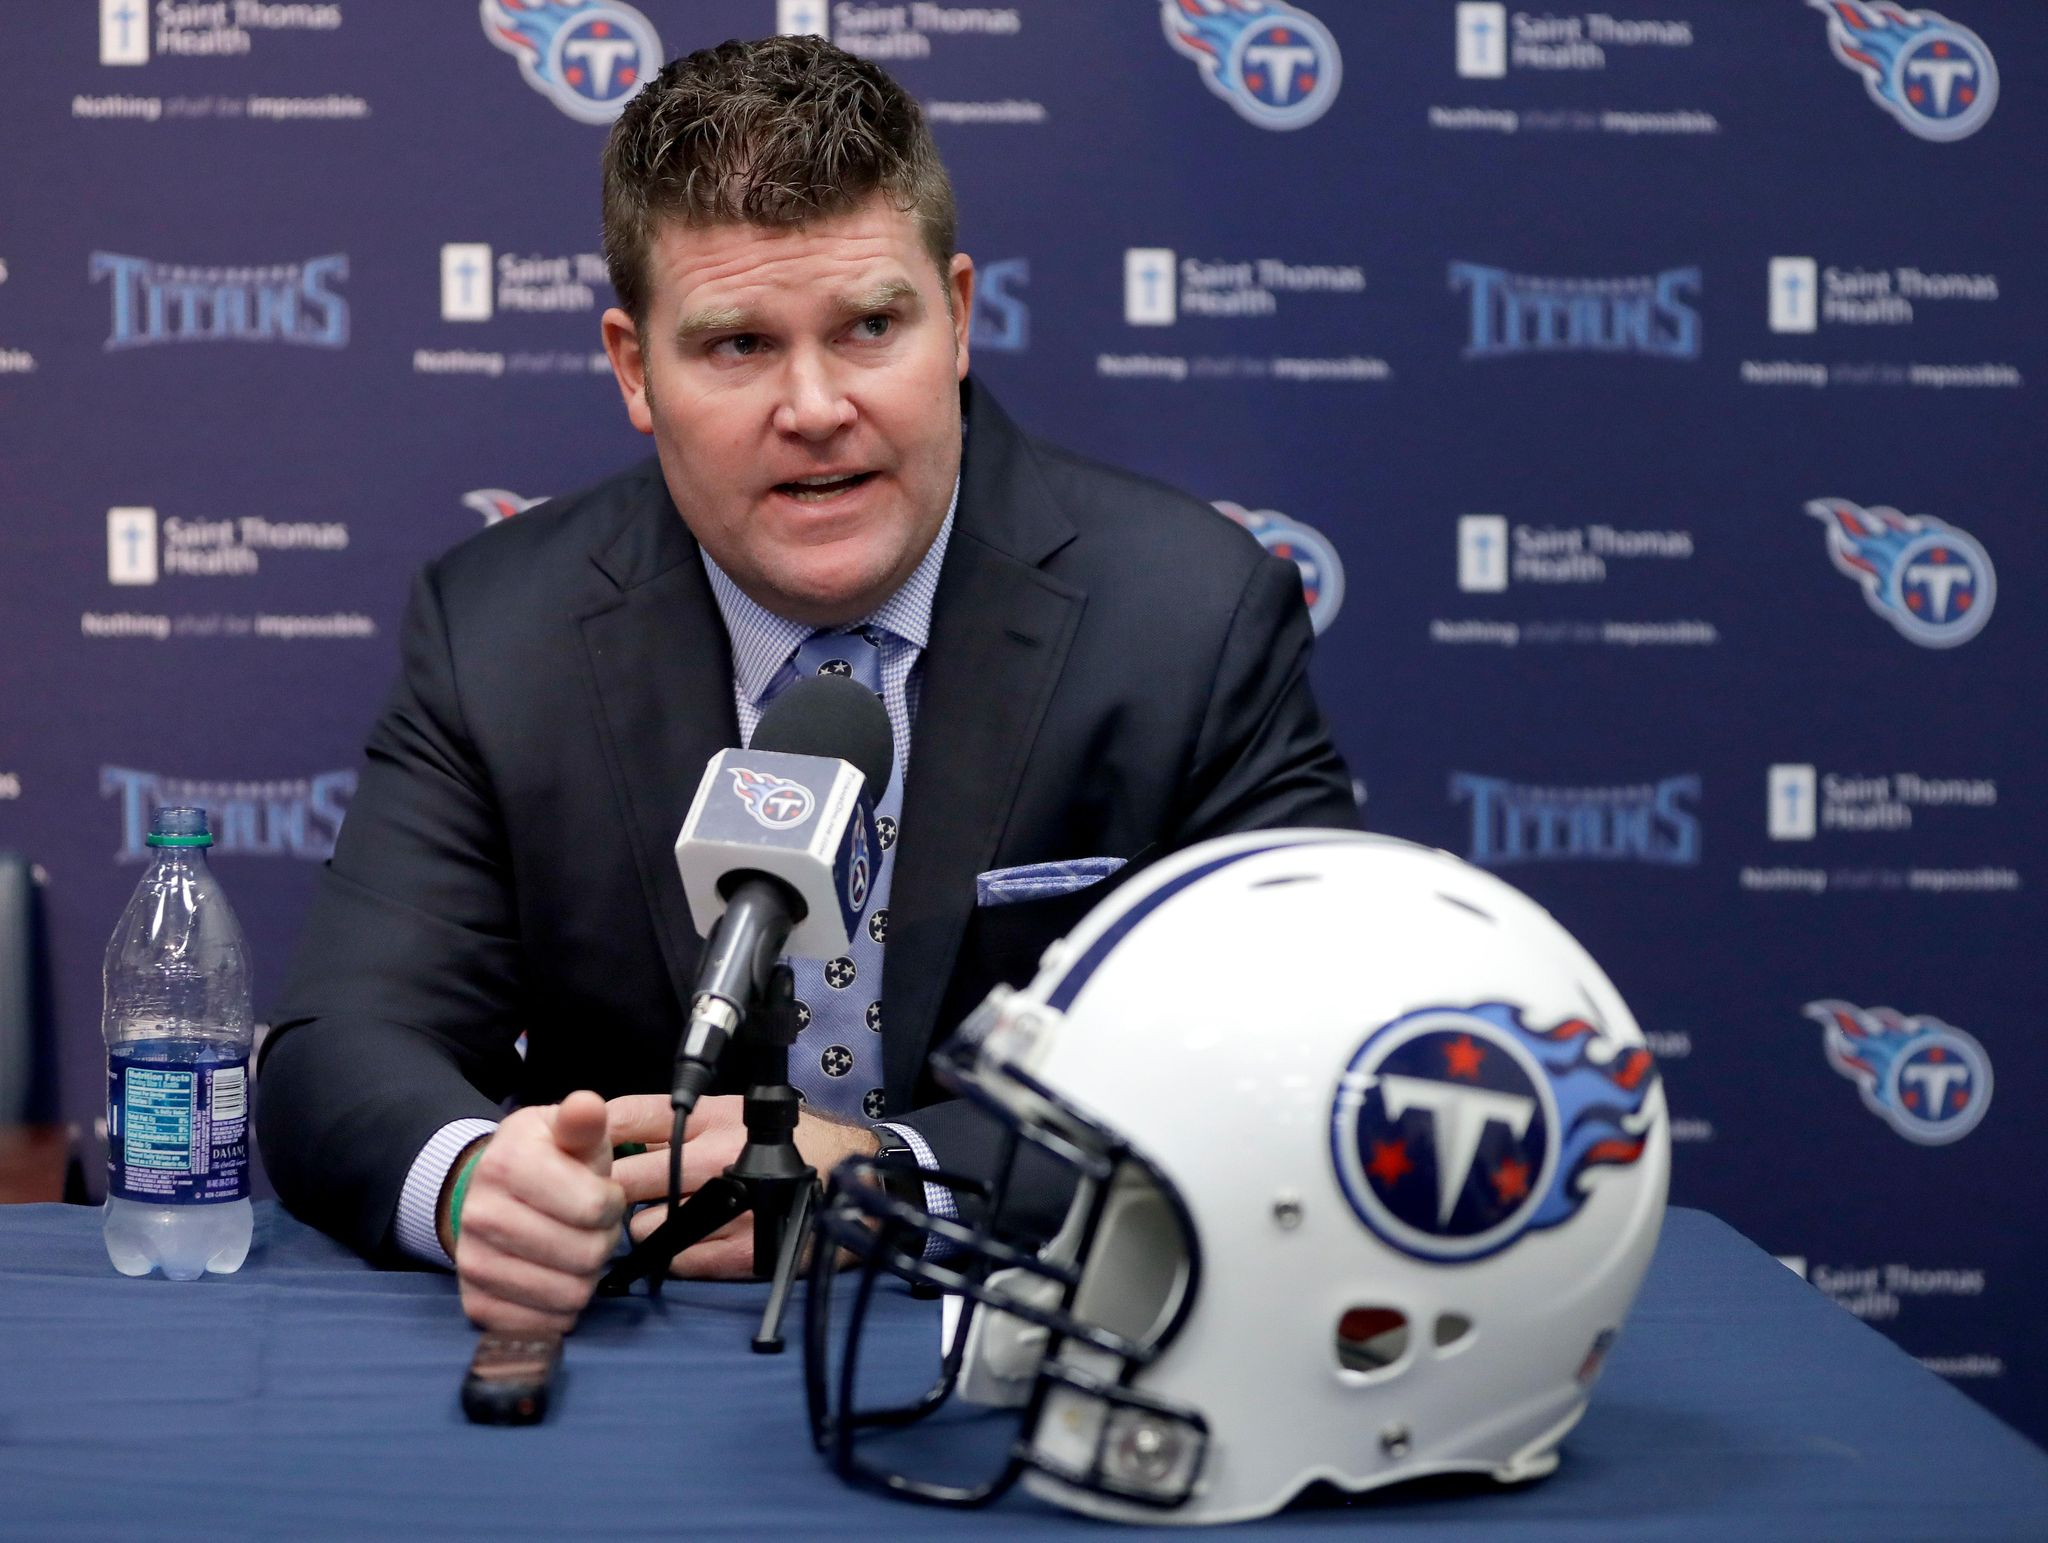 Titans_draft_preview_football_91153_s2048x1543